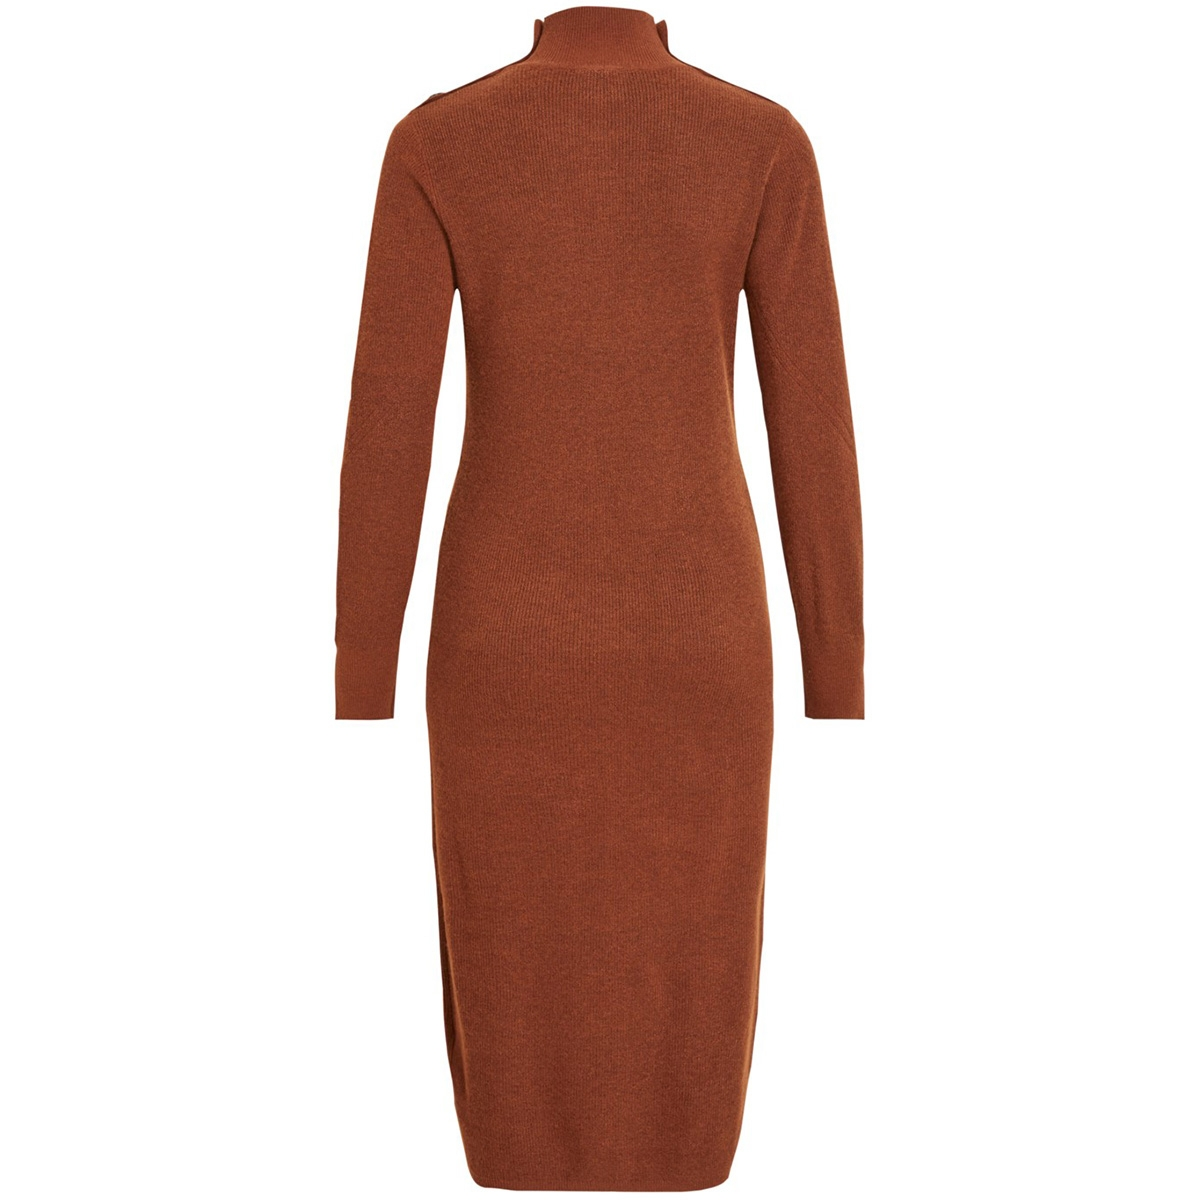 objjaney l/s knit dress 105 23030483 object jurk brown patina